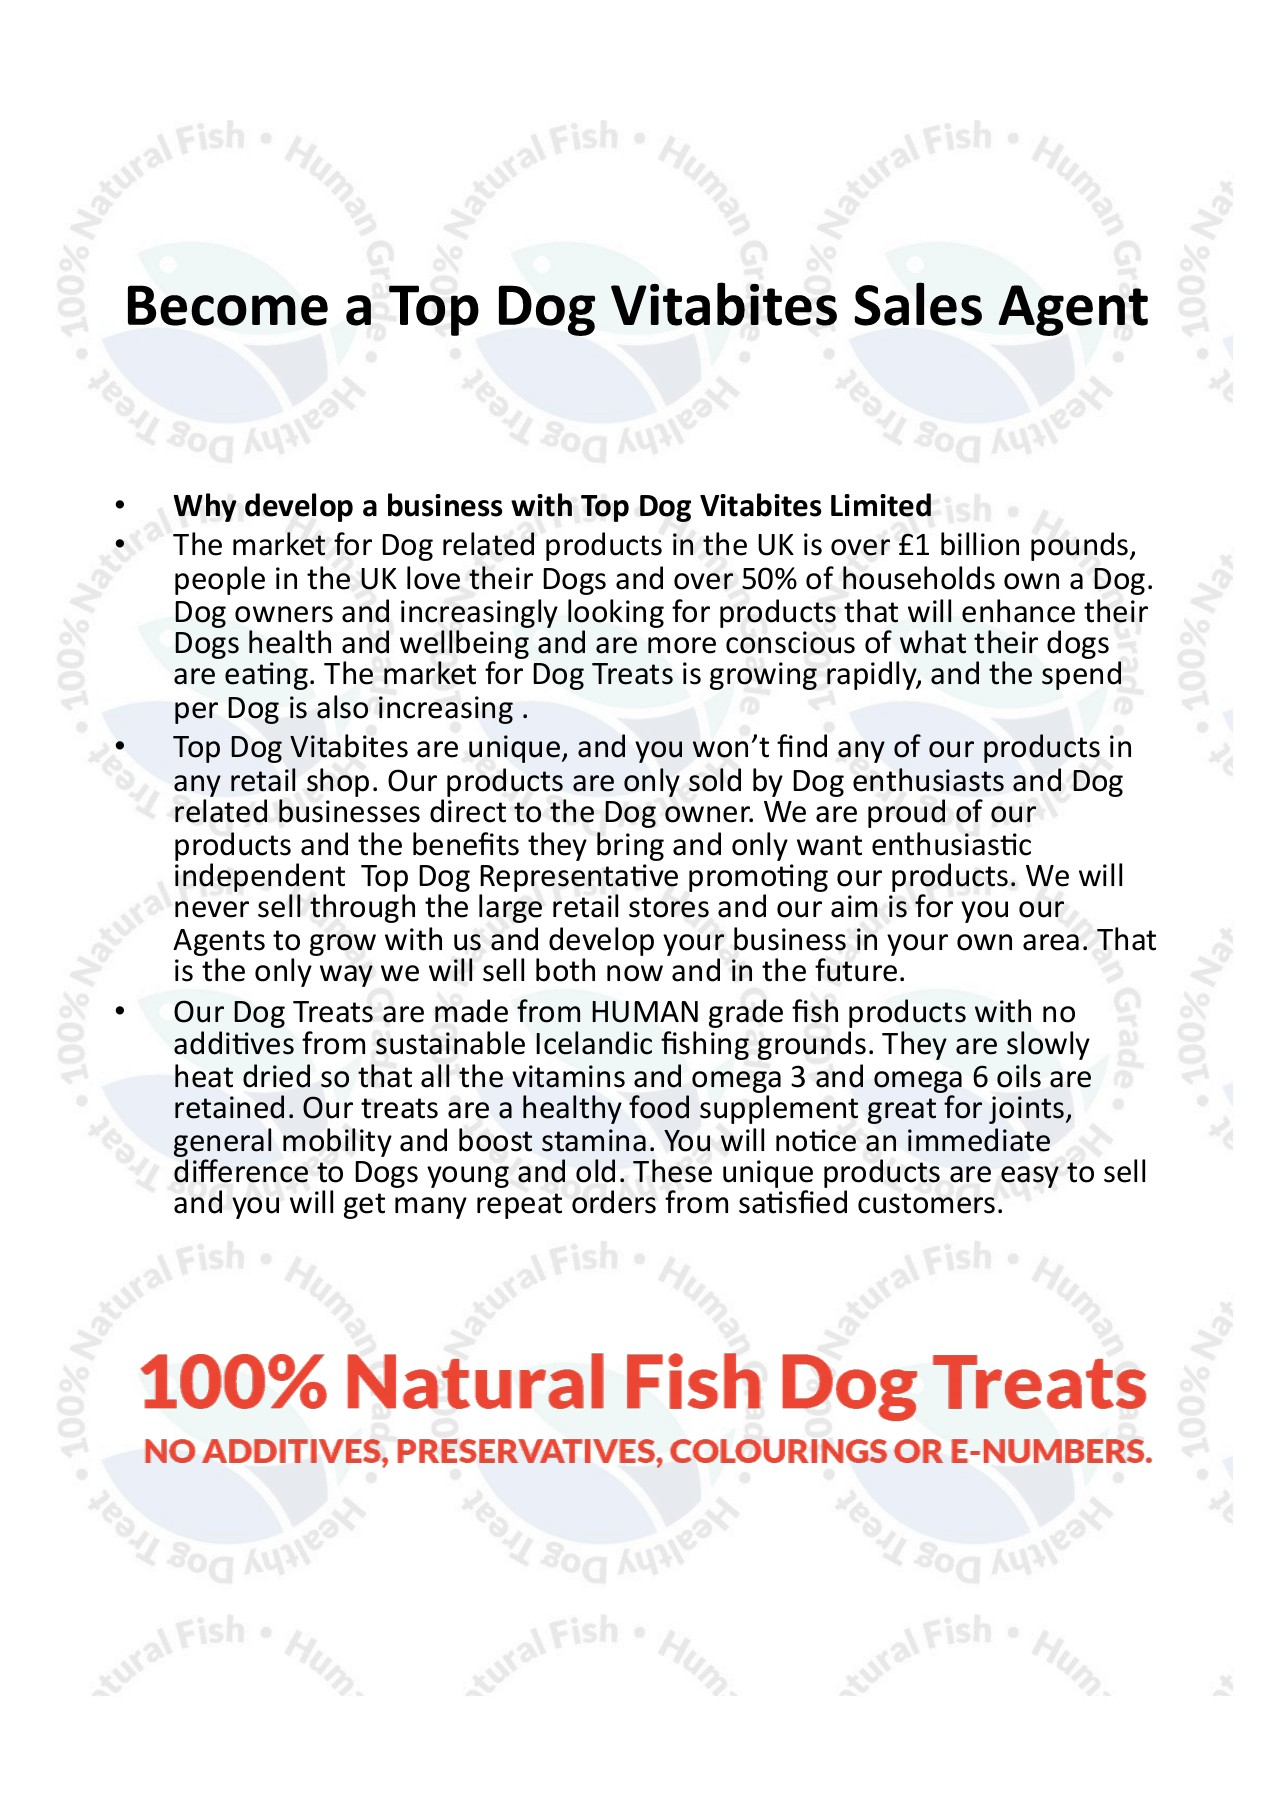 Become a Top Dog Vitabites Sales Agent